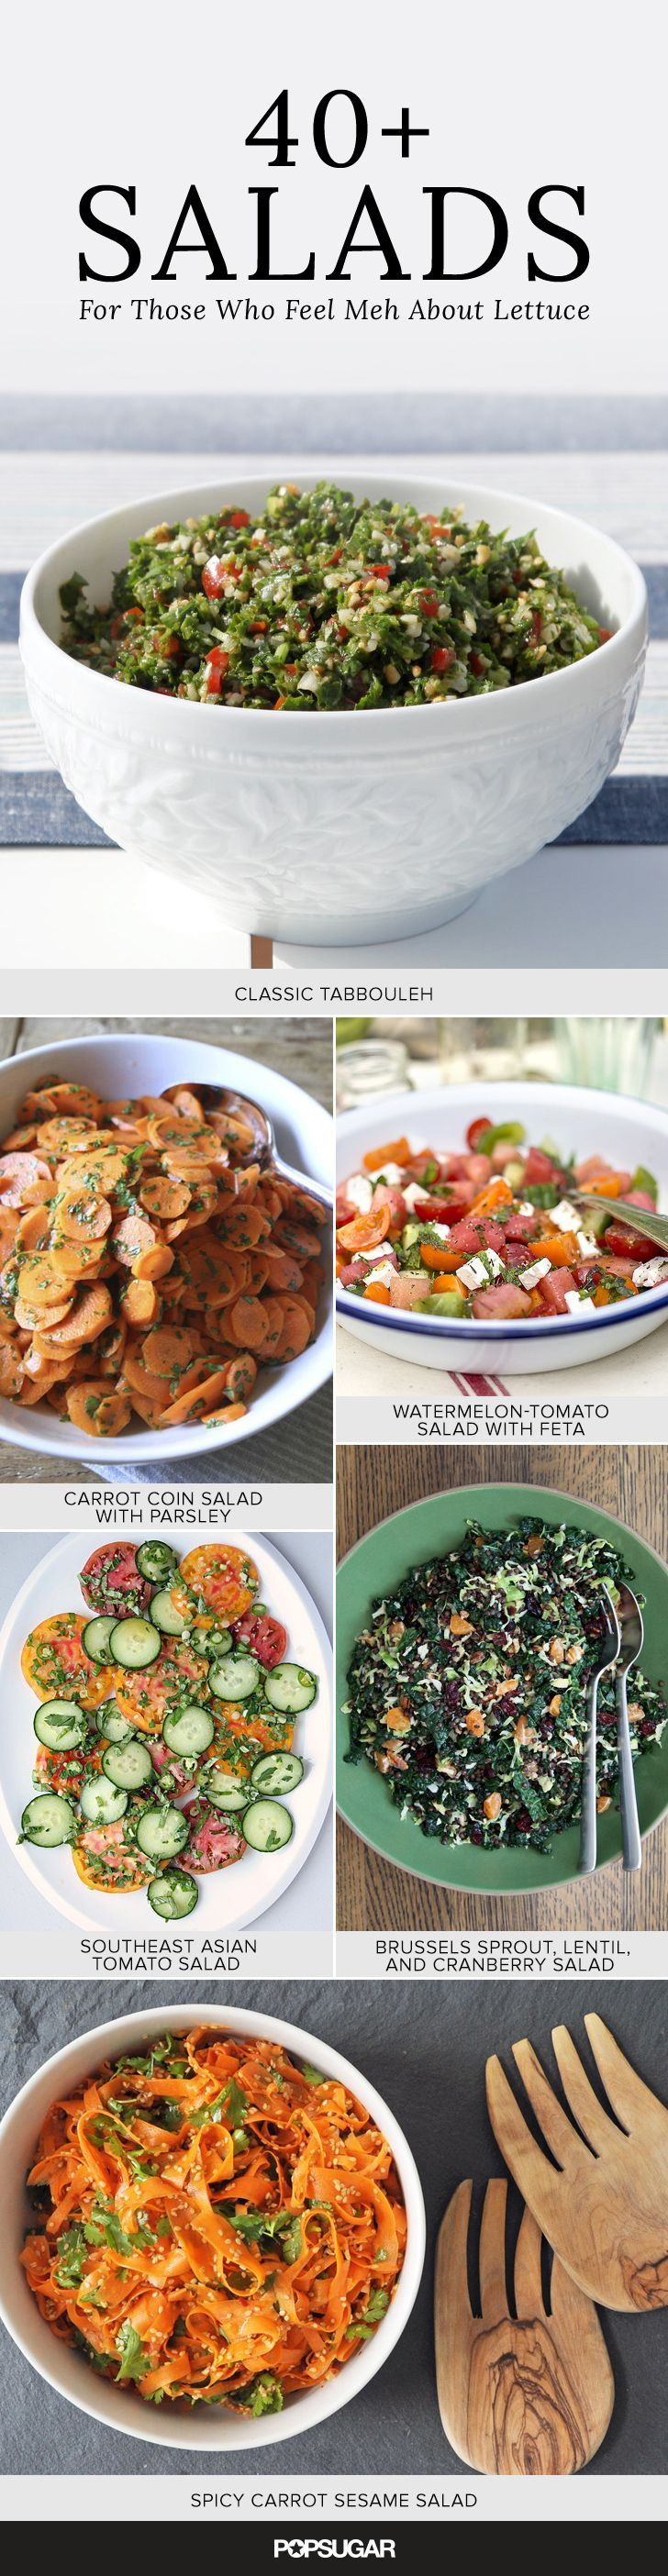 27 best recipes images on pinterest meals candies and recipes